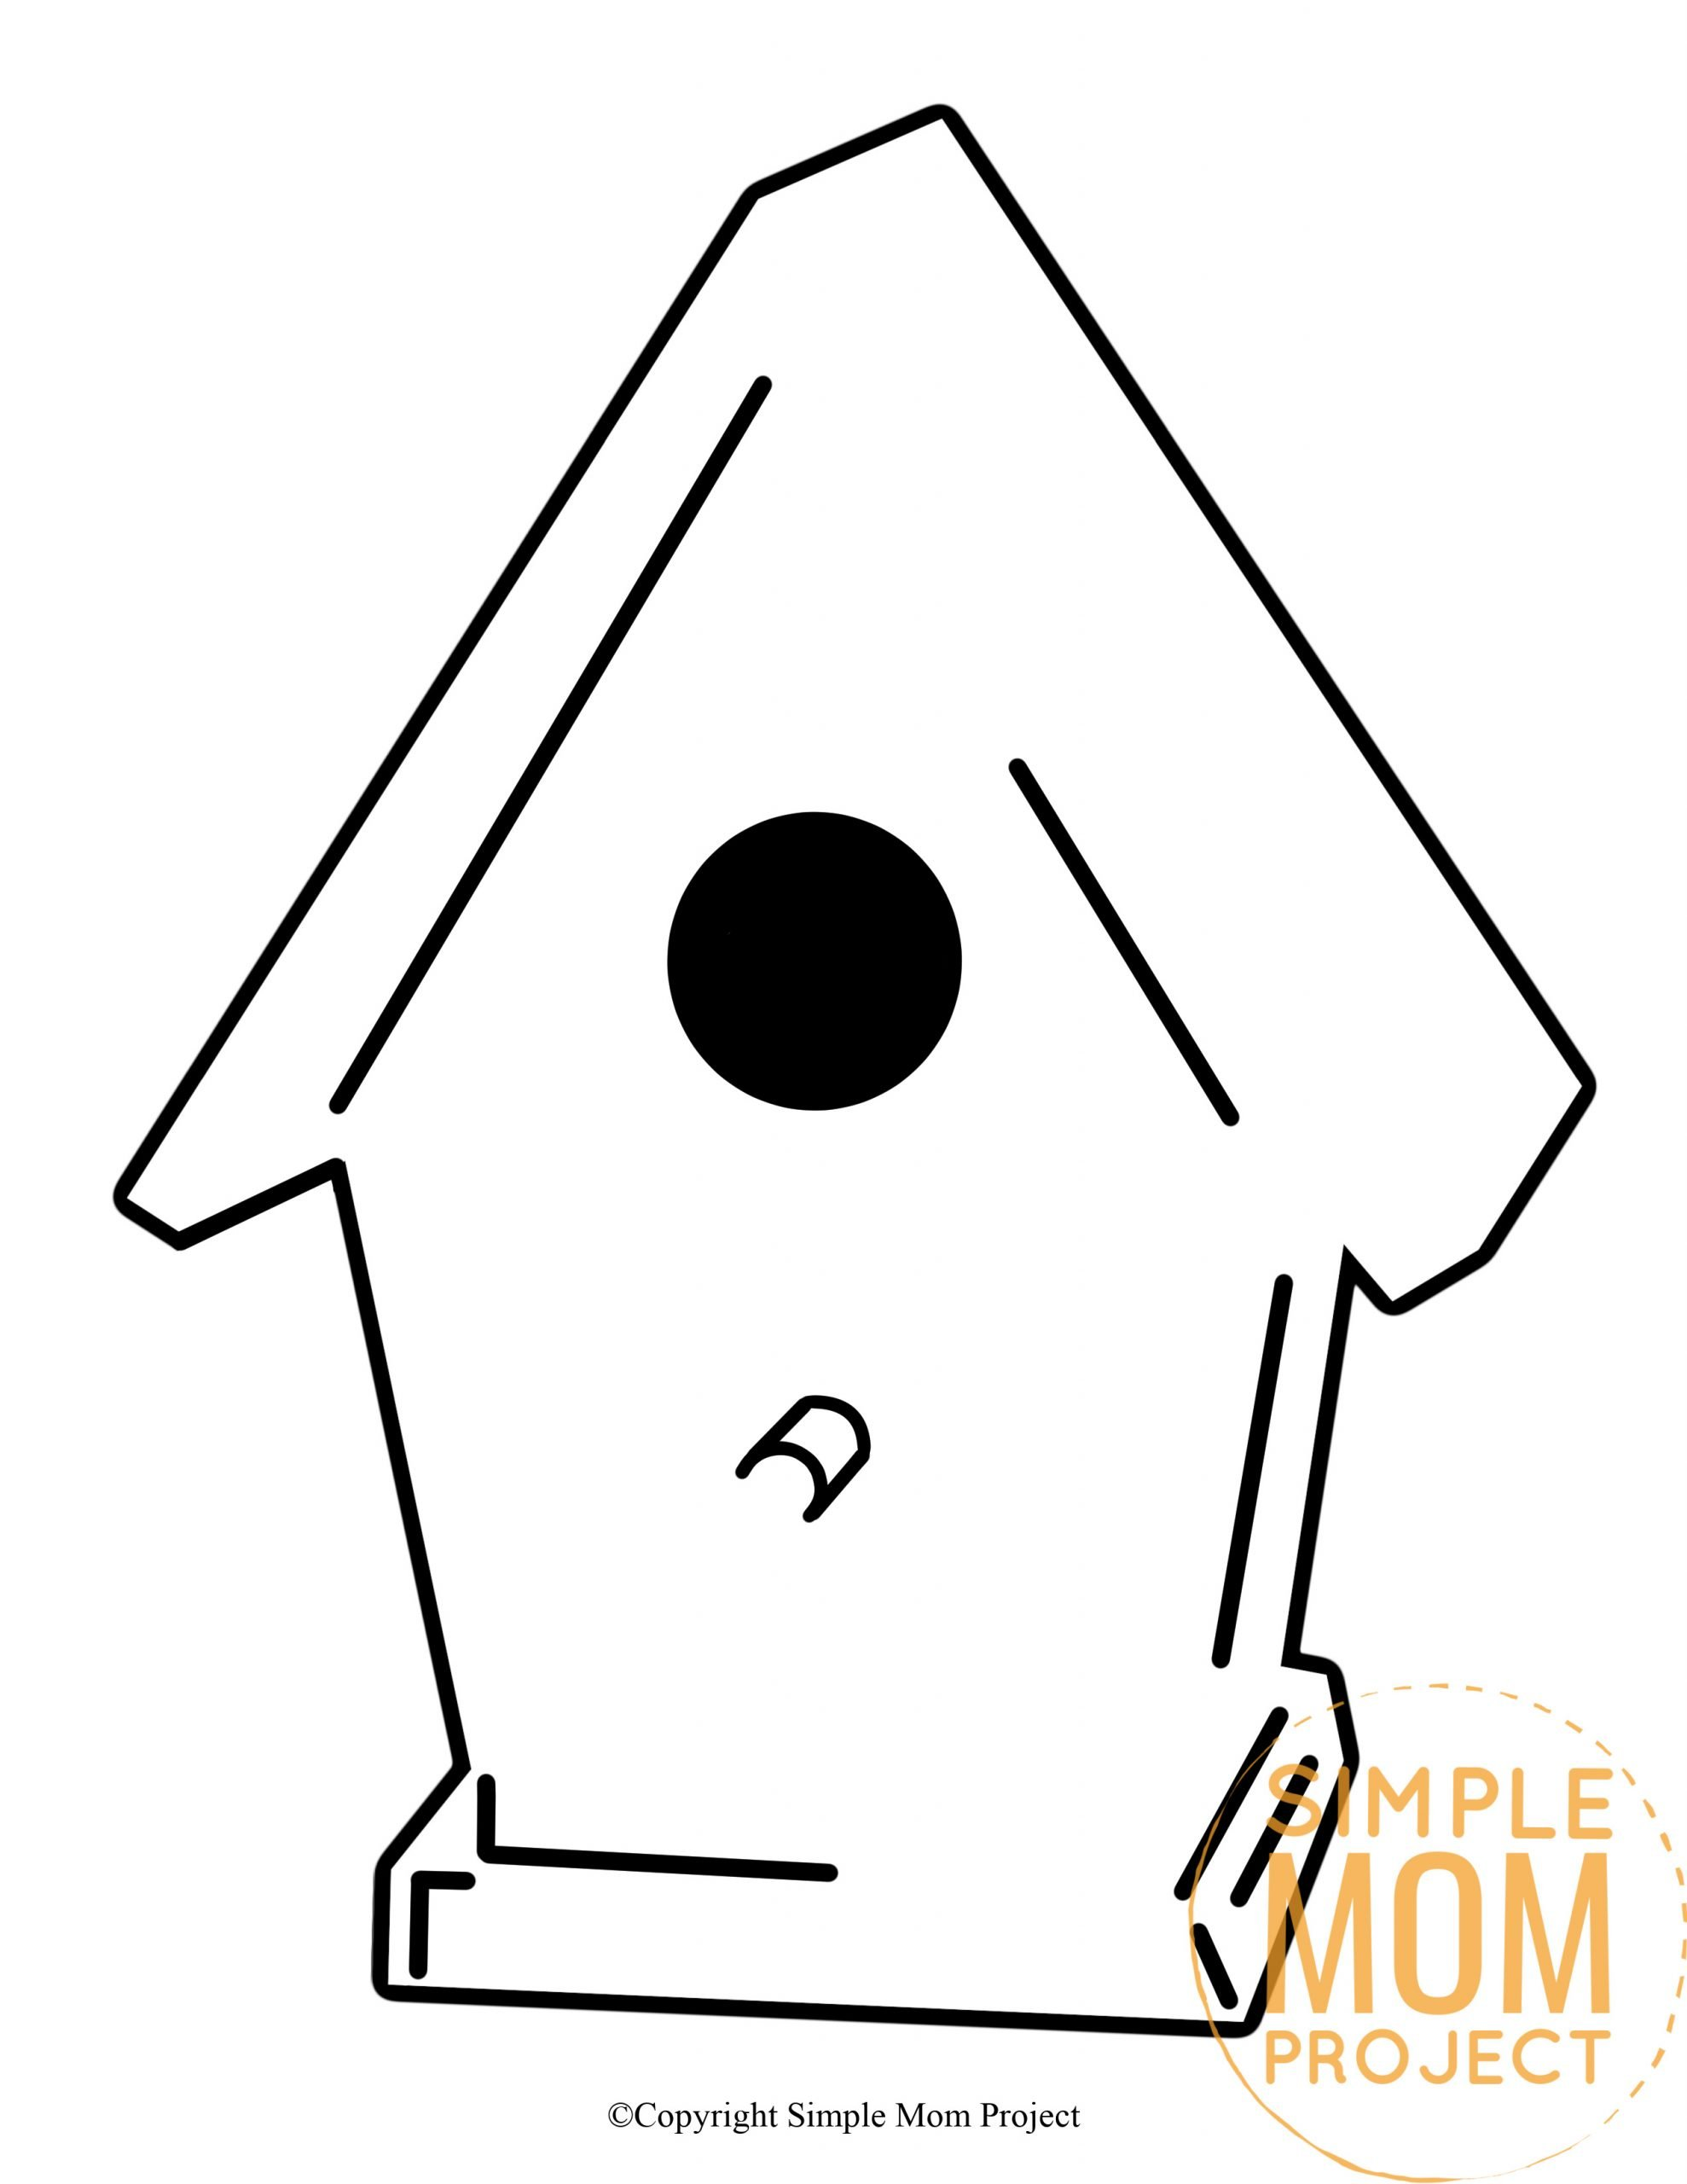 Free Printable Spring and Summer Bird House template silhouette for kids preschoolers and toddlers